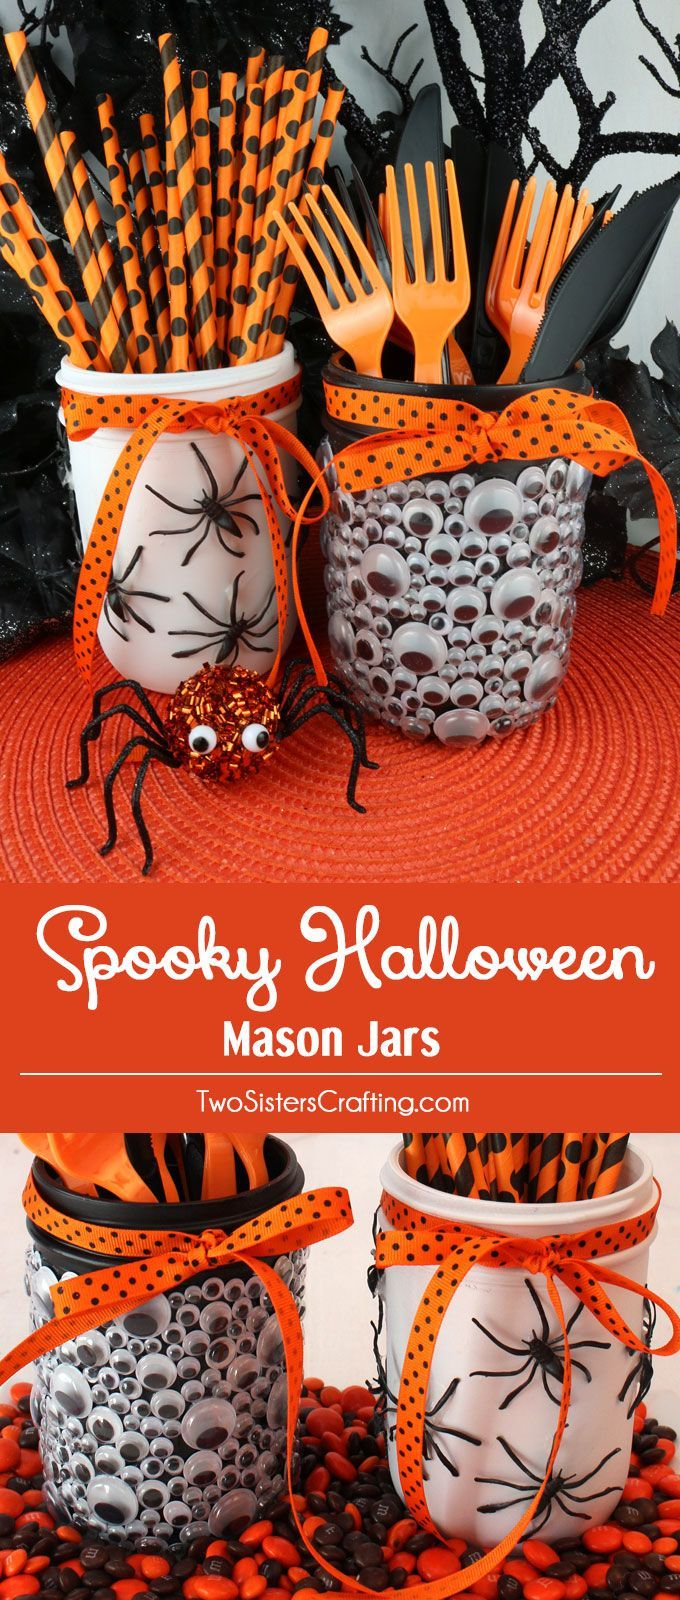 spooky halloween mason jars - Halloween Decorations Images